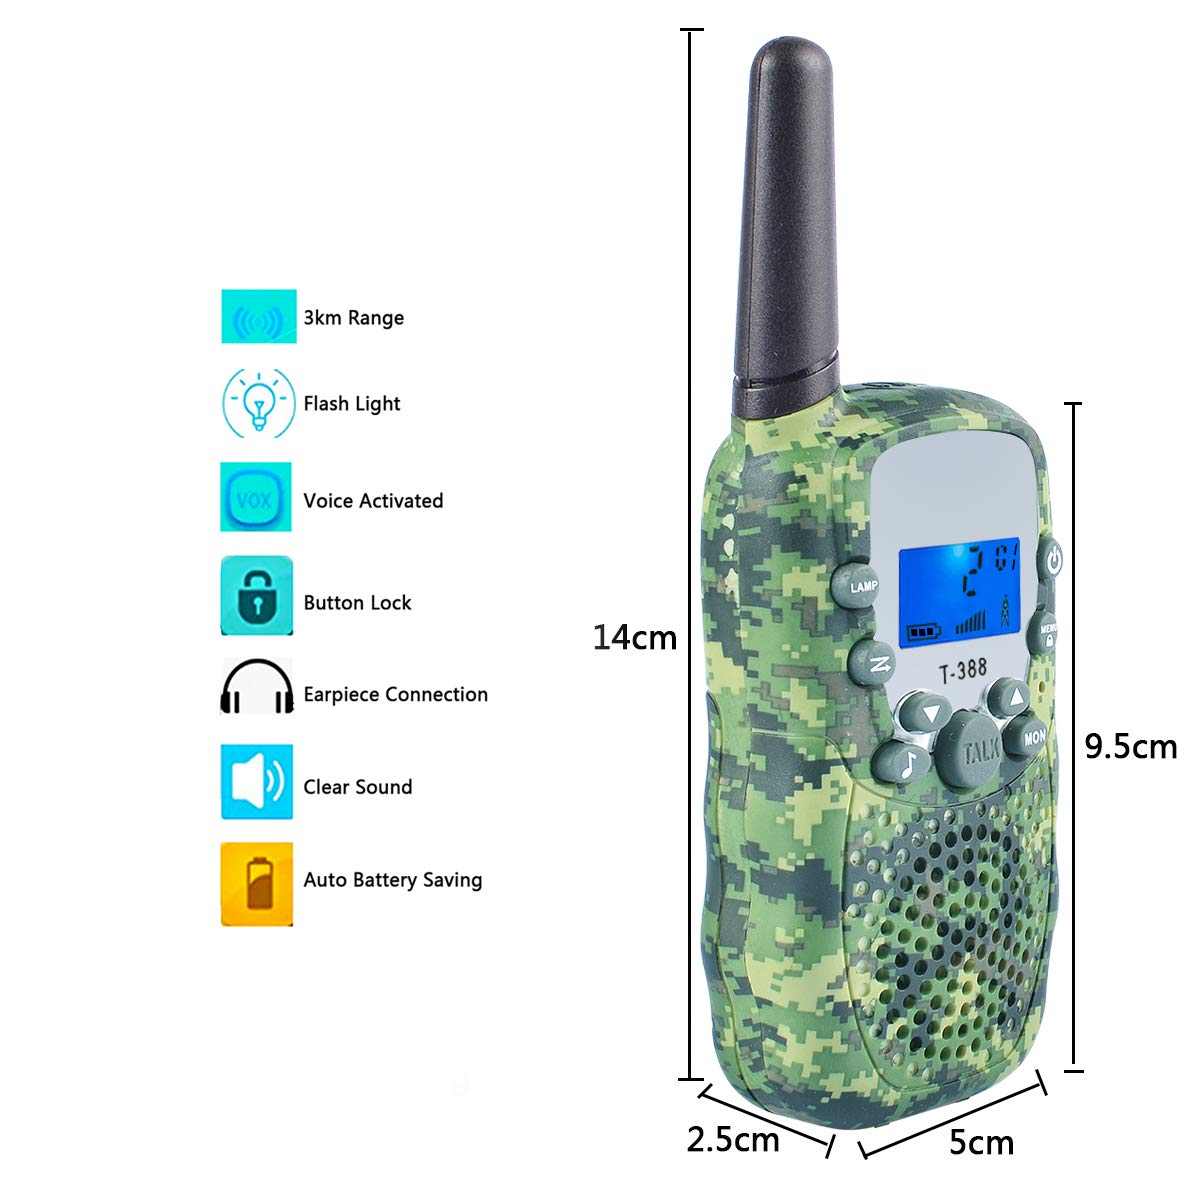 Coolzon Walkie Talkie Kids with 3km Long Distance Range 3 Pcs Walky Talky Two Way Radio With Backlit LCD Flashlight for Camping Hiking Biking